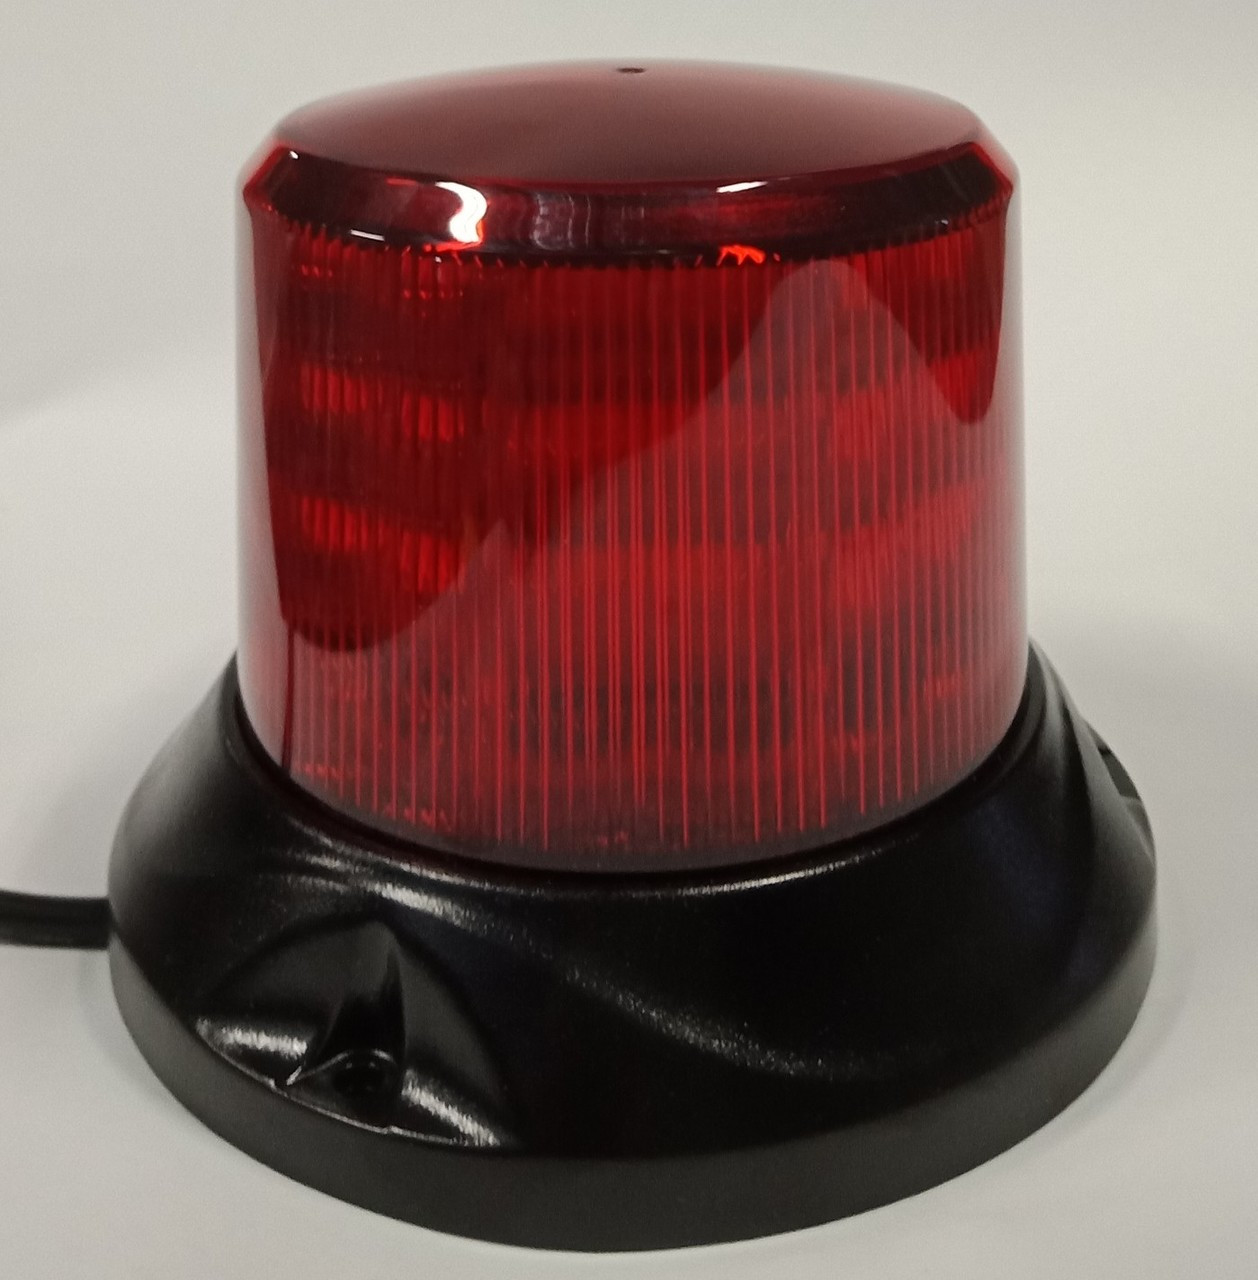 RB132MR - Mini Profile, Red Safety Rotation and Strobe Beacon. Magnet Mount.  Mini Revolver, 15 watts RB132MR. Roadvision. Ultimate LED.